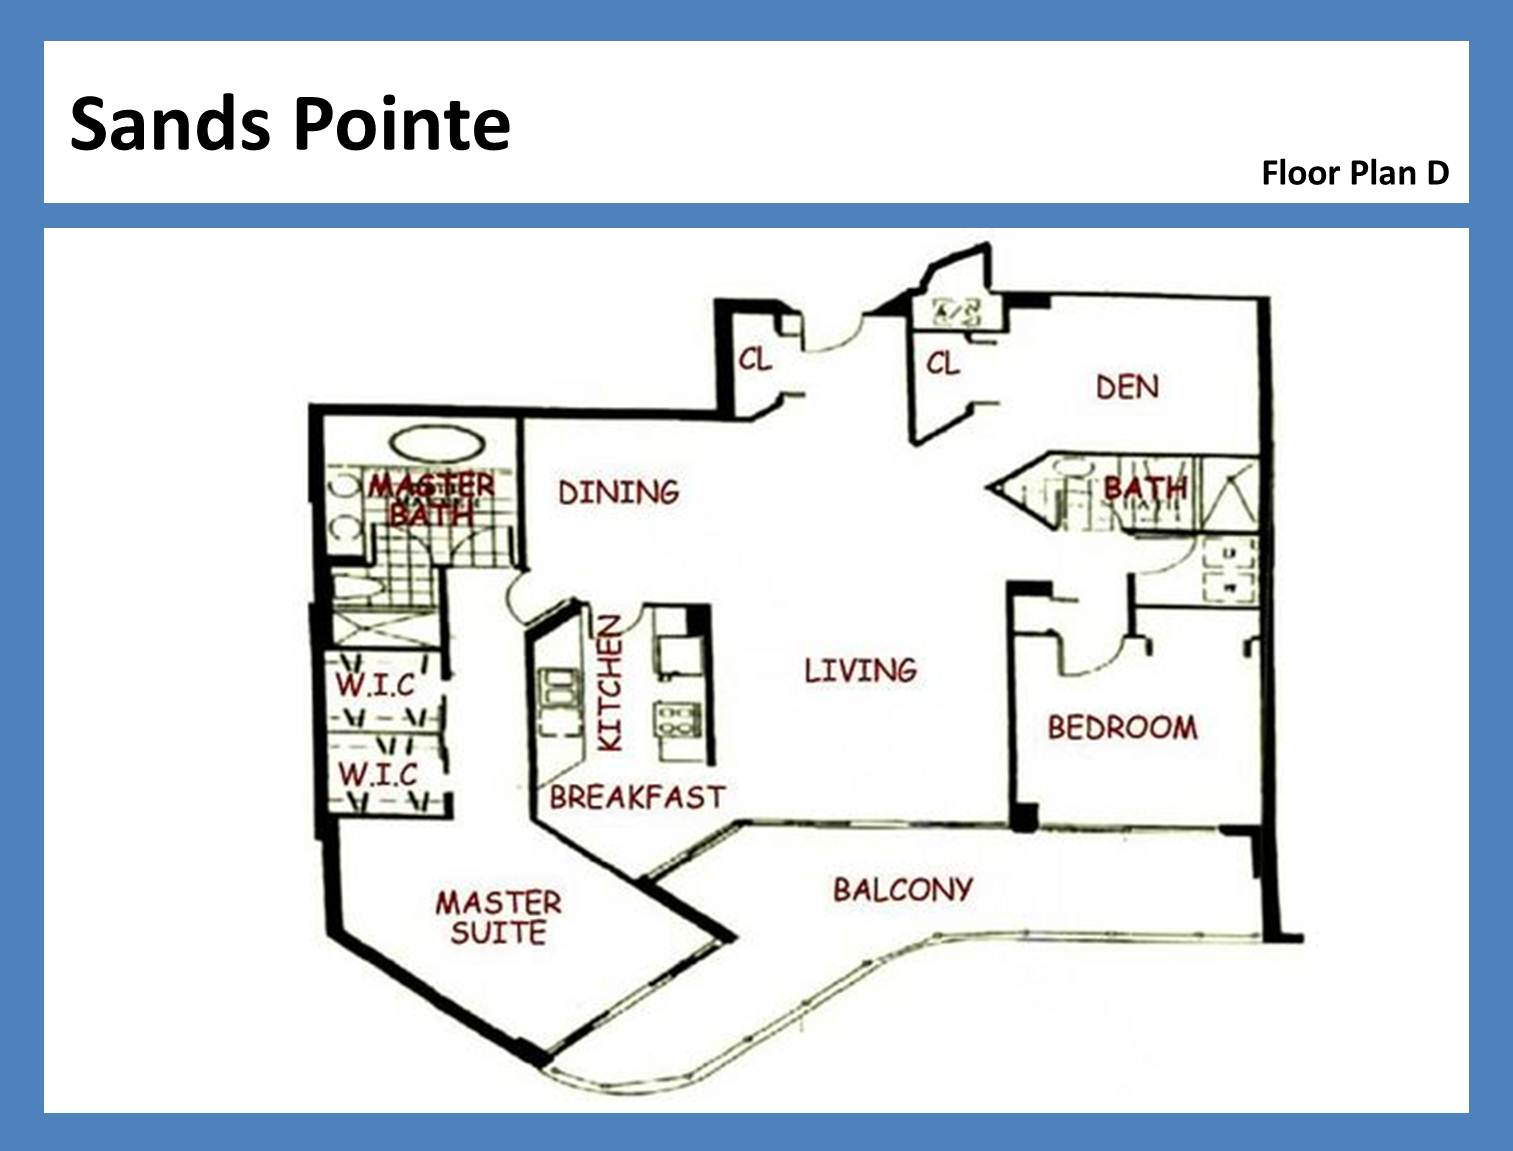 Sands Pointe Sunny Isles Condo Real Estate Condos For Sale And Rent Bogatov Realty